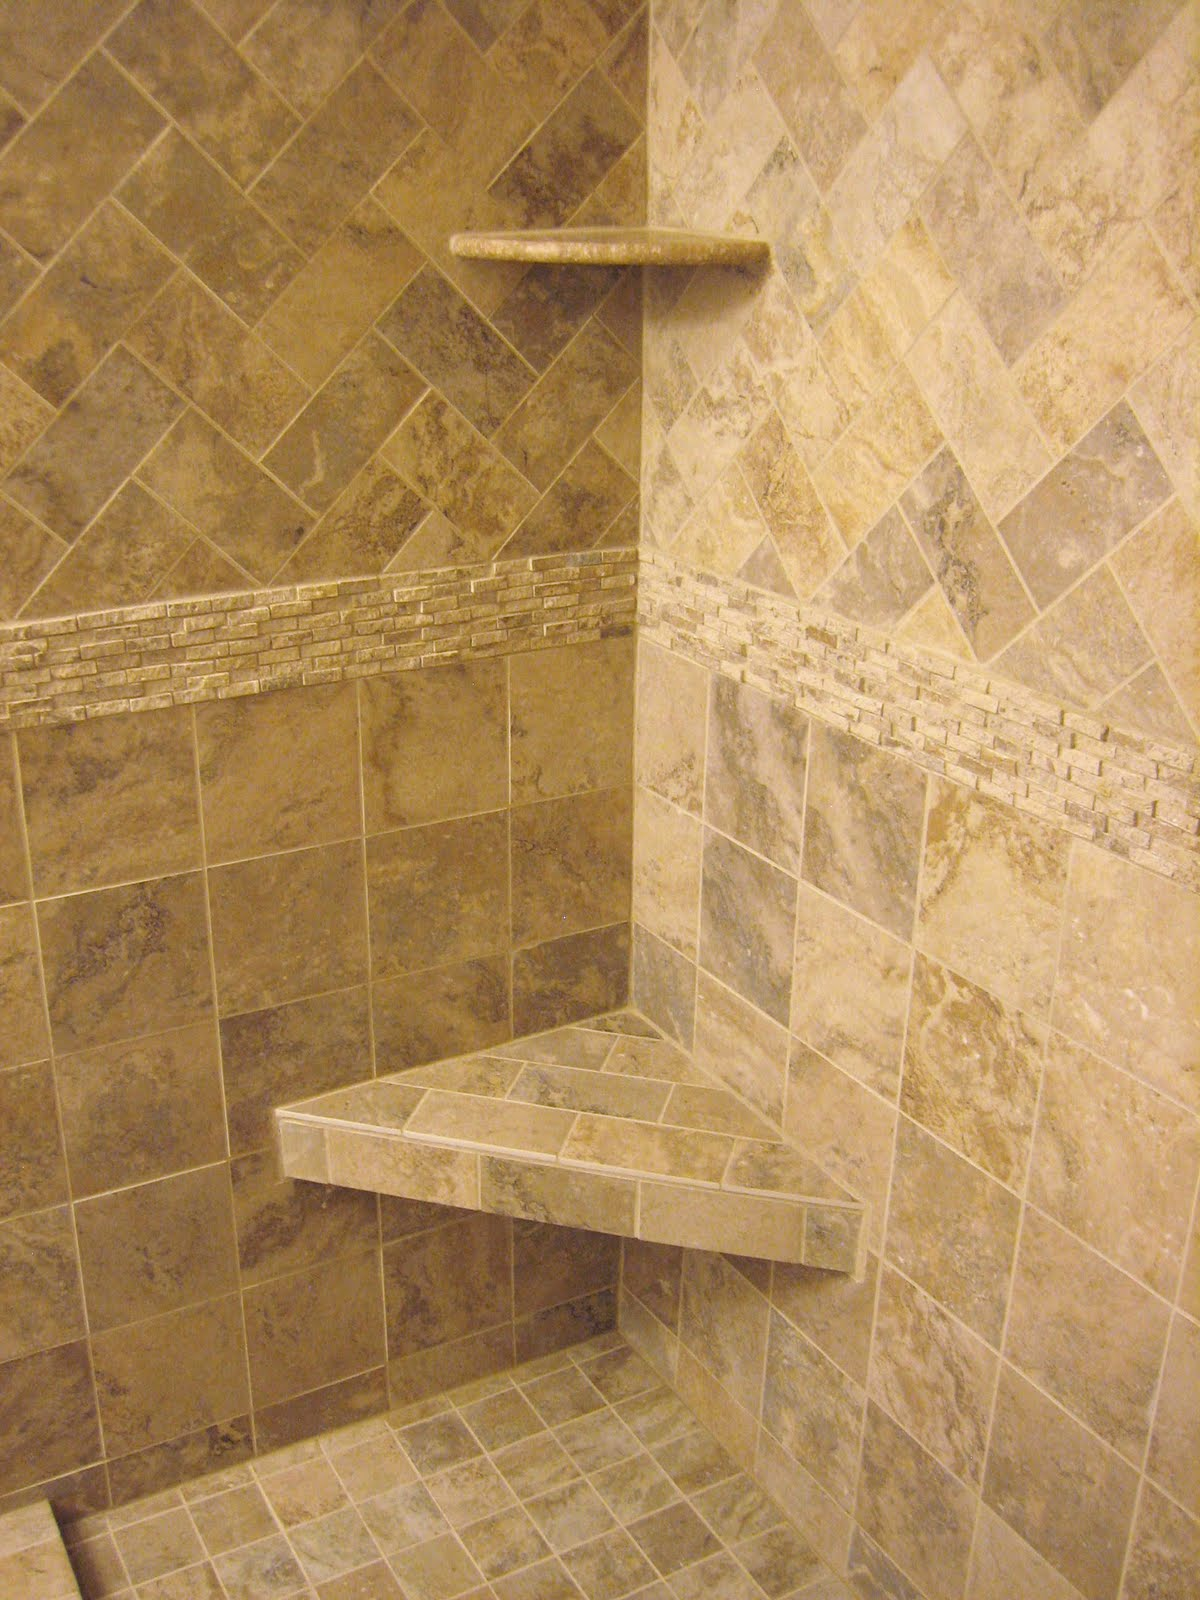 H winter showroom blog luxury master bath remodel athena Bathroom shower tile designs